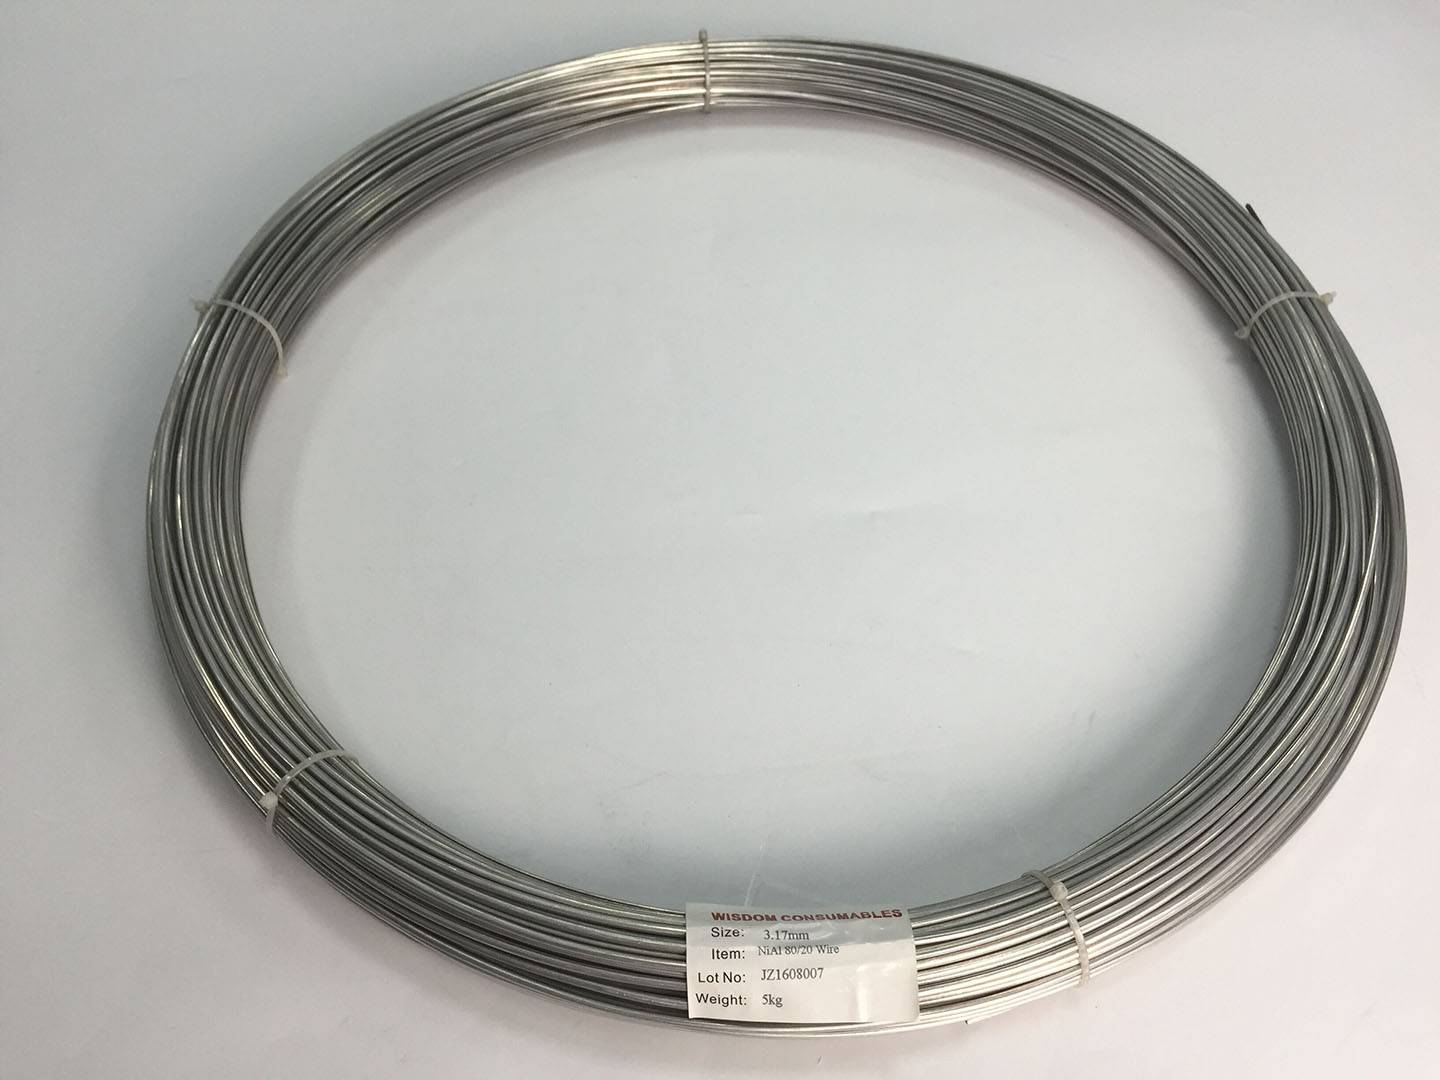 NiAl 8020 wires for thermal spraying, equal to TAFA 79B, Metco 405